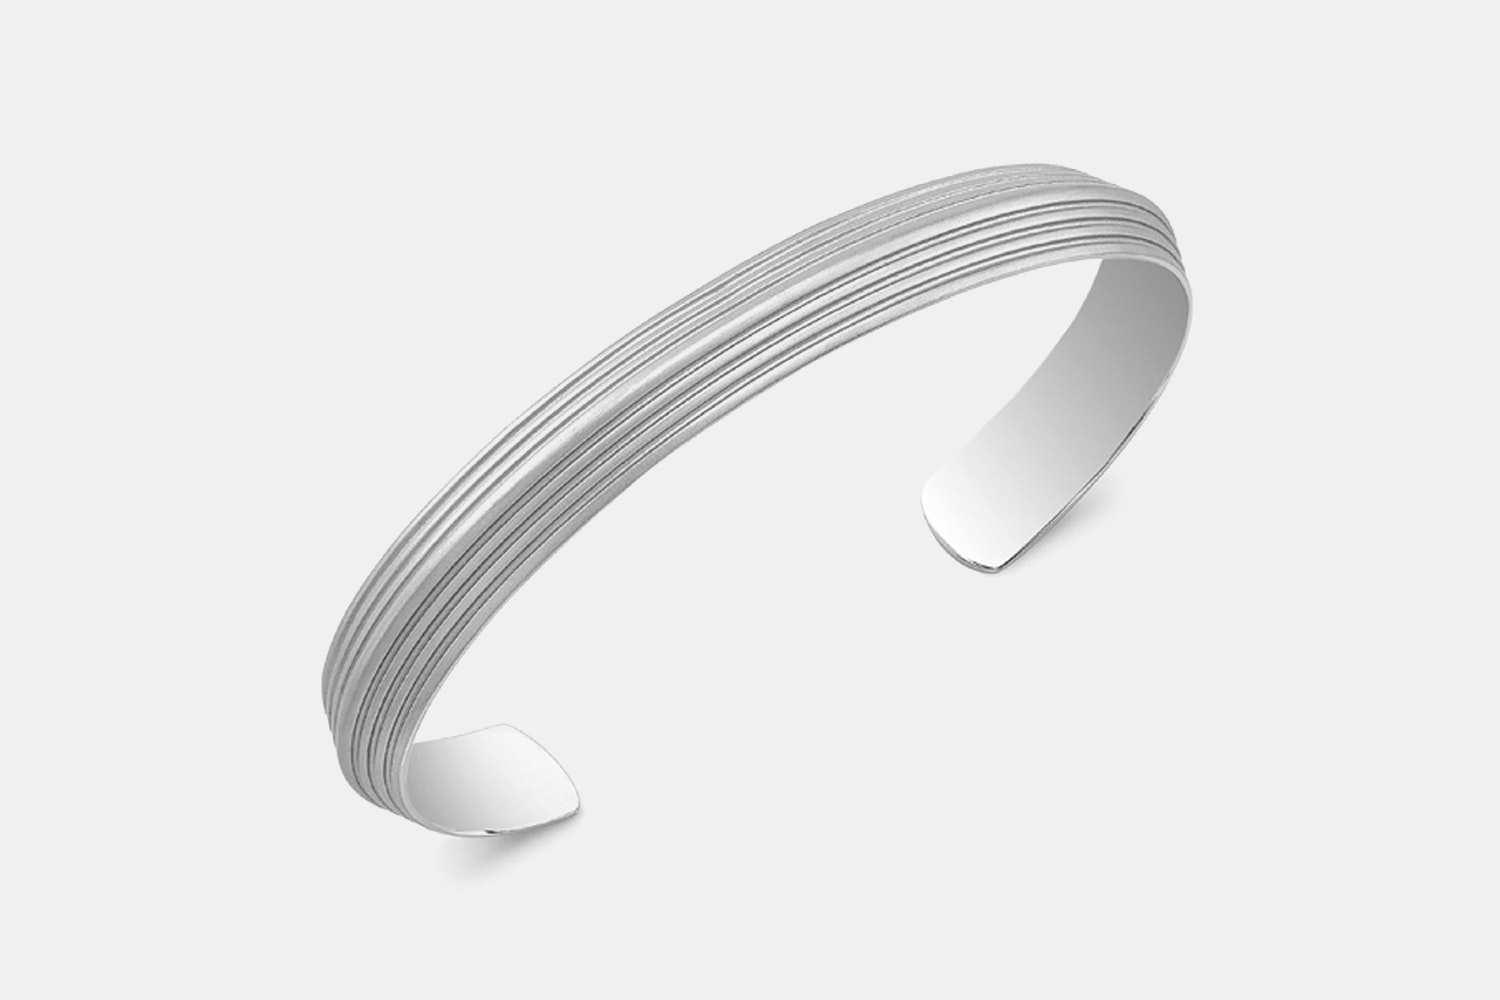 Stainless Steel Blade Striped Wrist Cuff Stainless Steel Matte